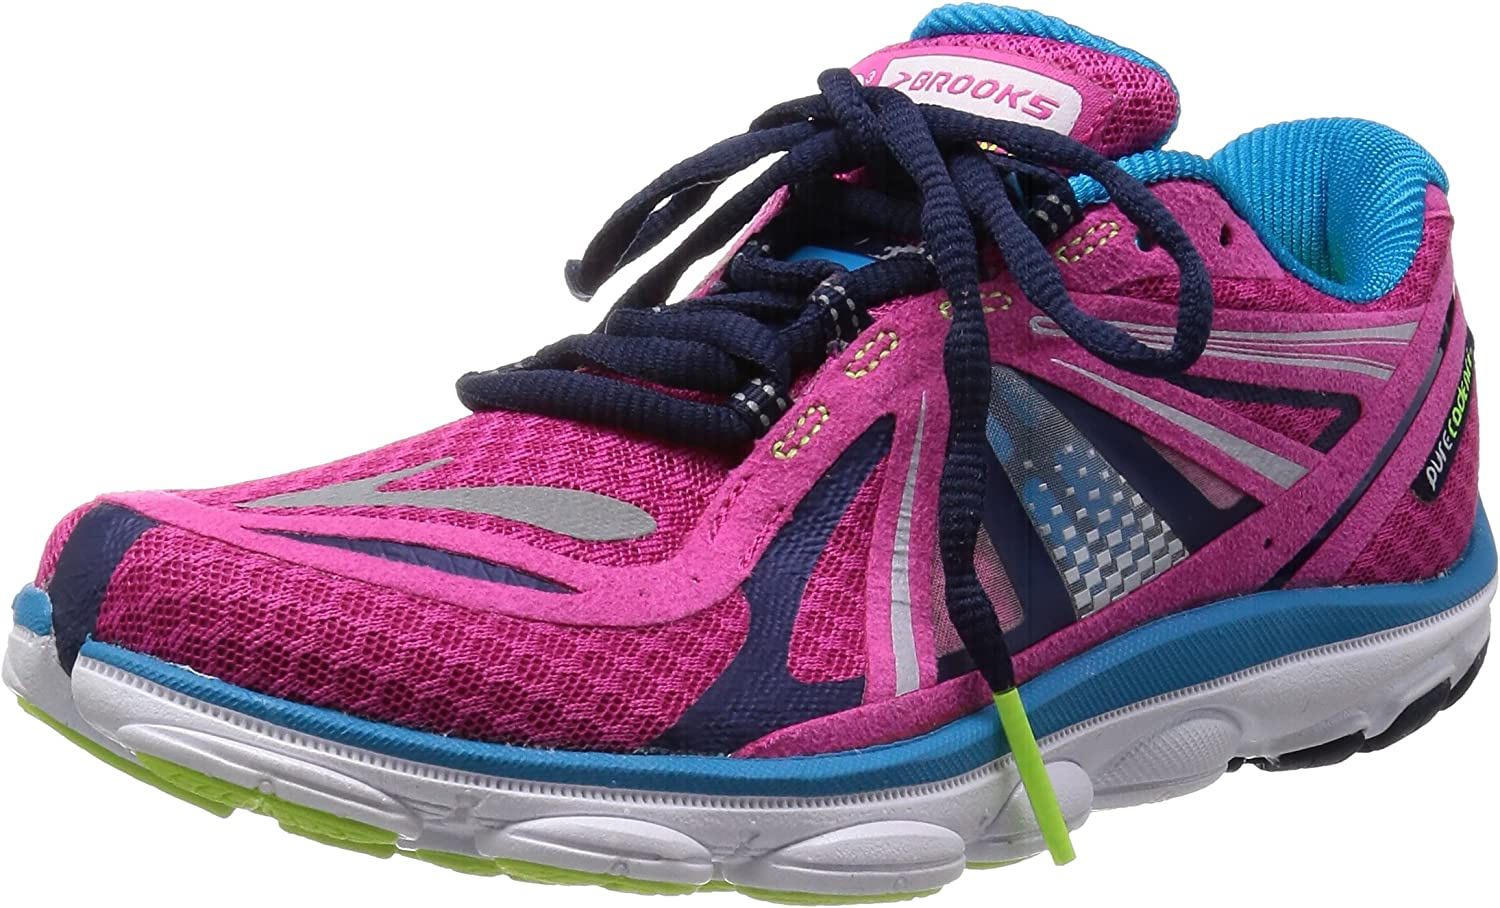 Brooks Womens PureCadence 3 Chaussure De Running shoes,Shocking Pink bluee,6.5 US